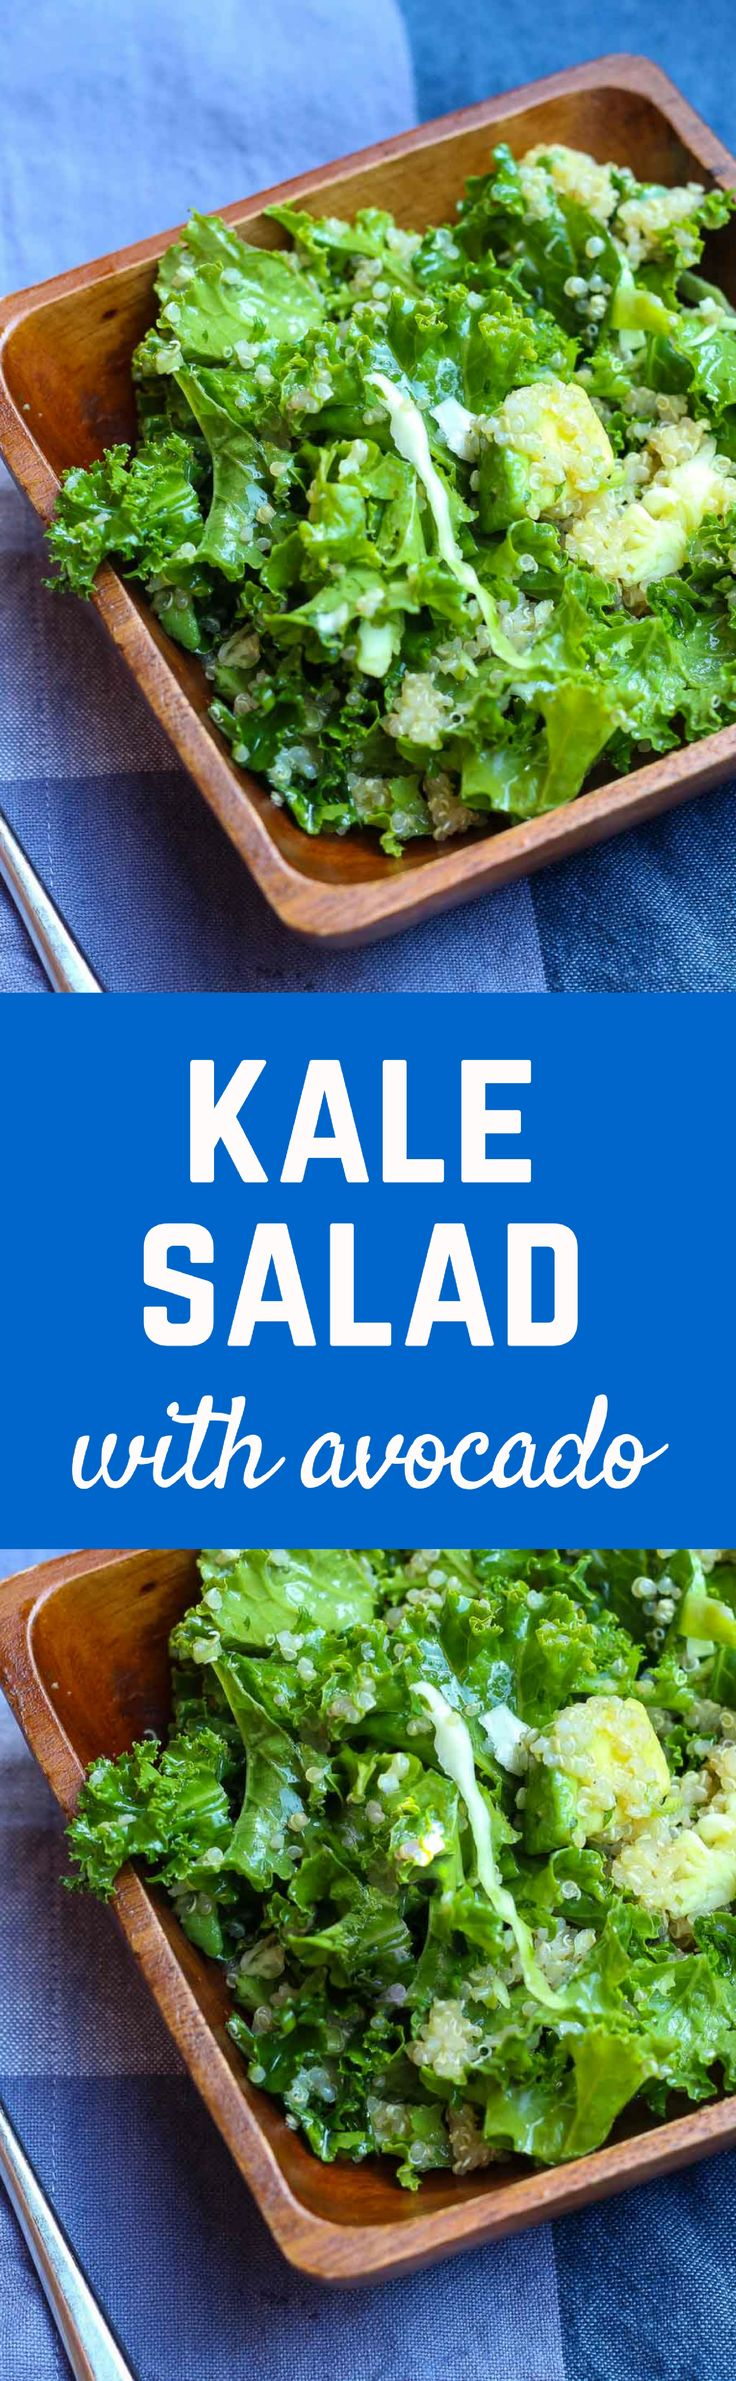 ... Crazy for Side Dishes on Pinterest | Cold pasta, Salads and Picnics